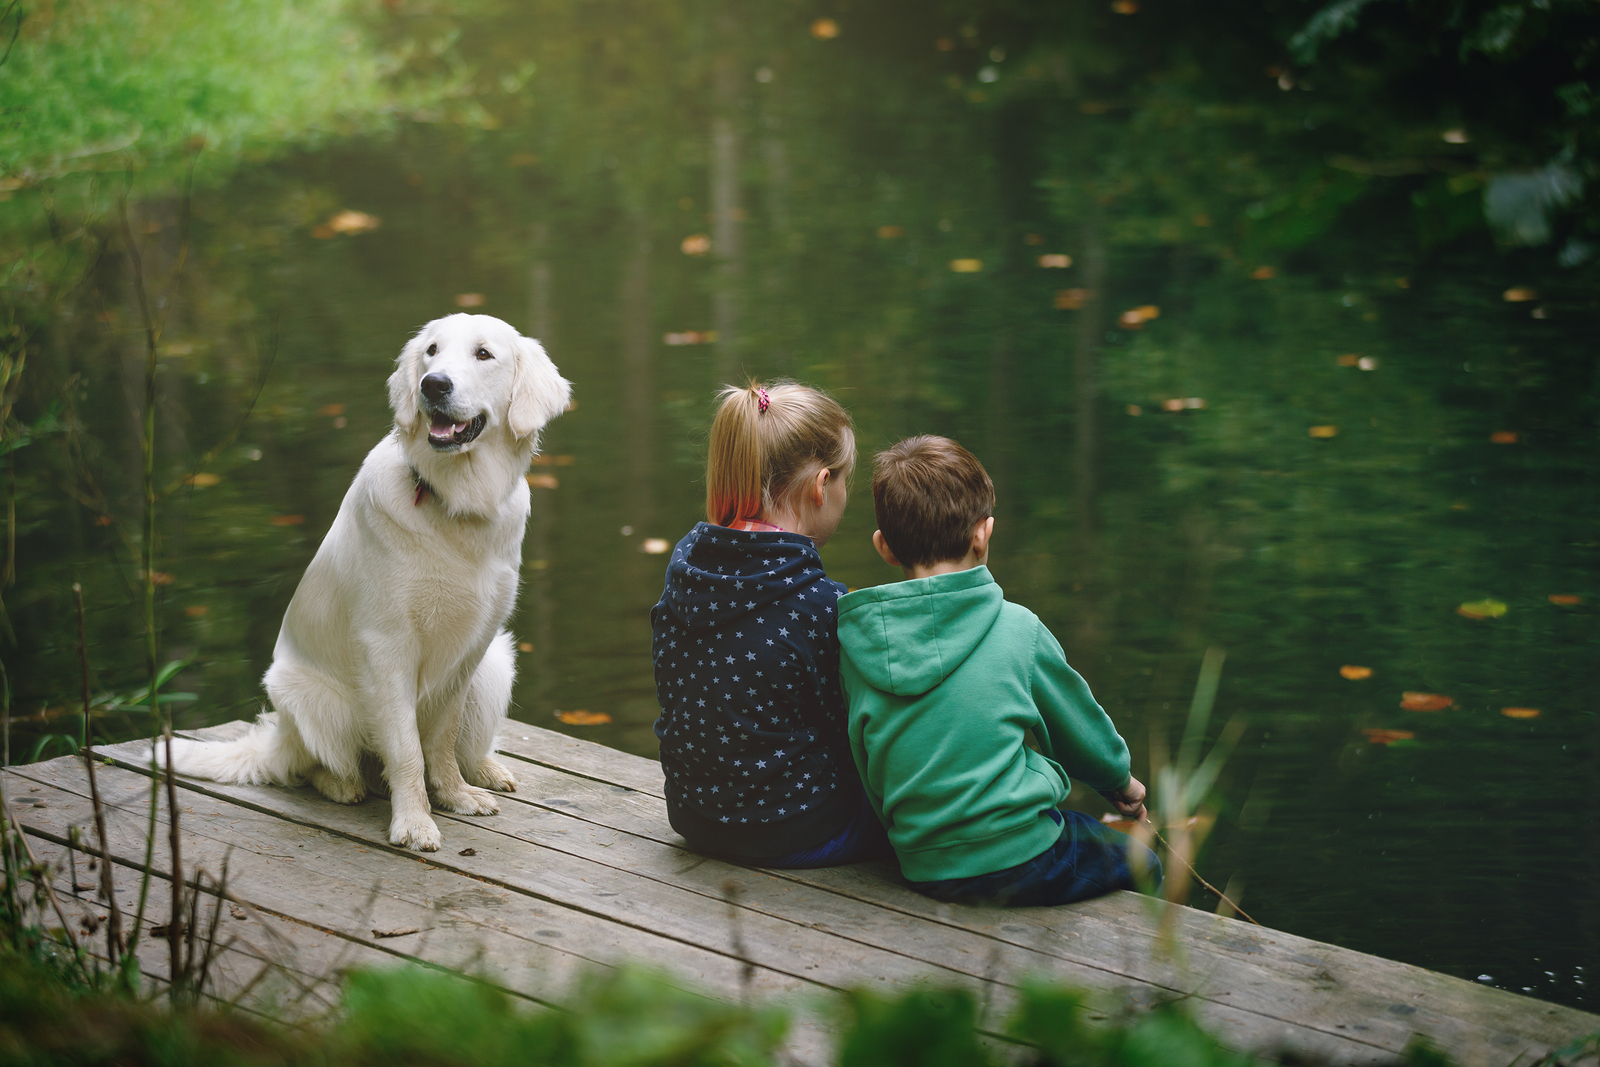 two kids and a dog by a body of water